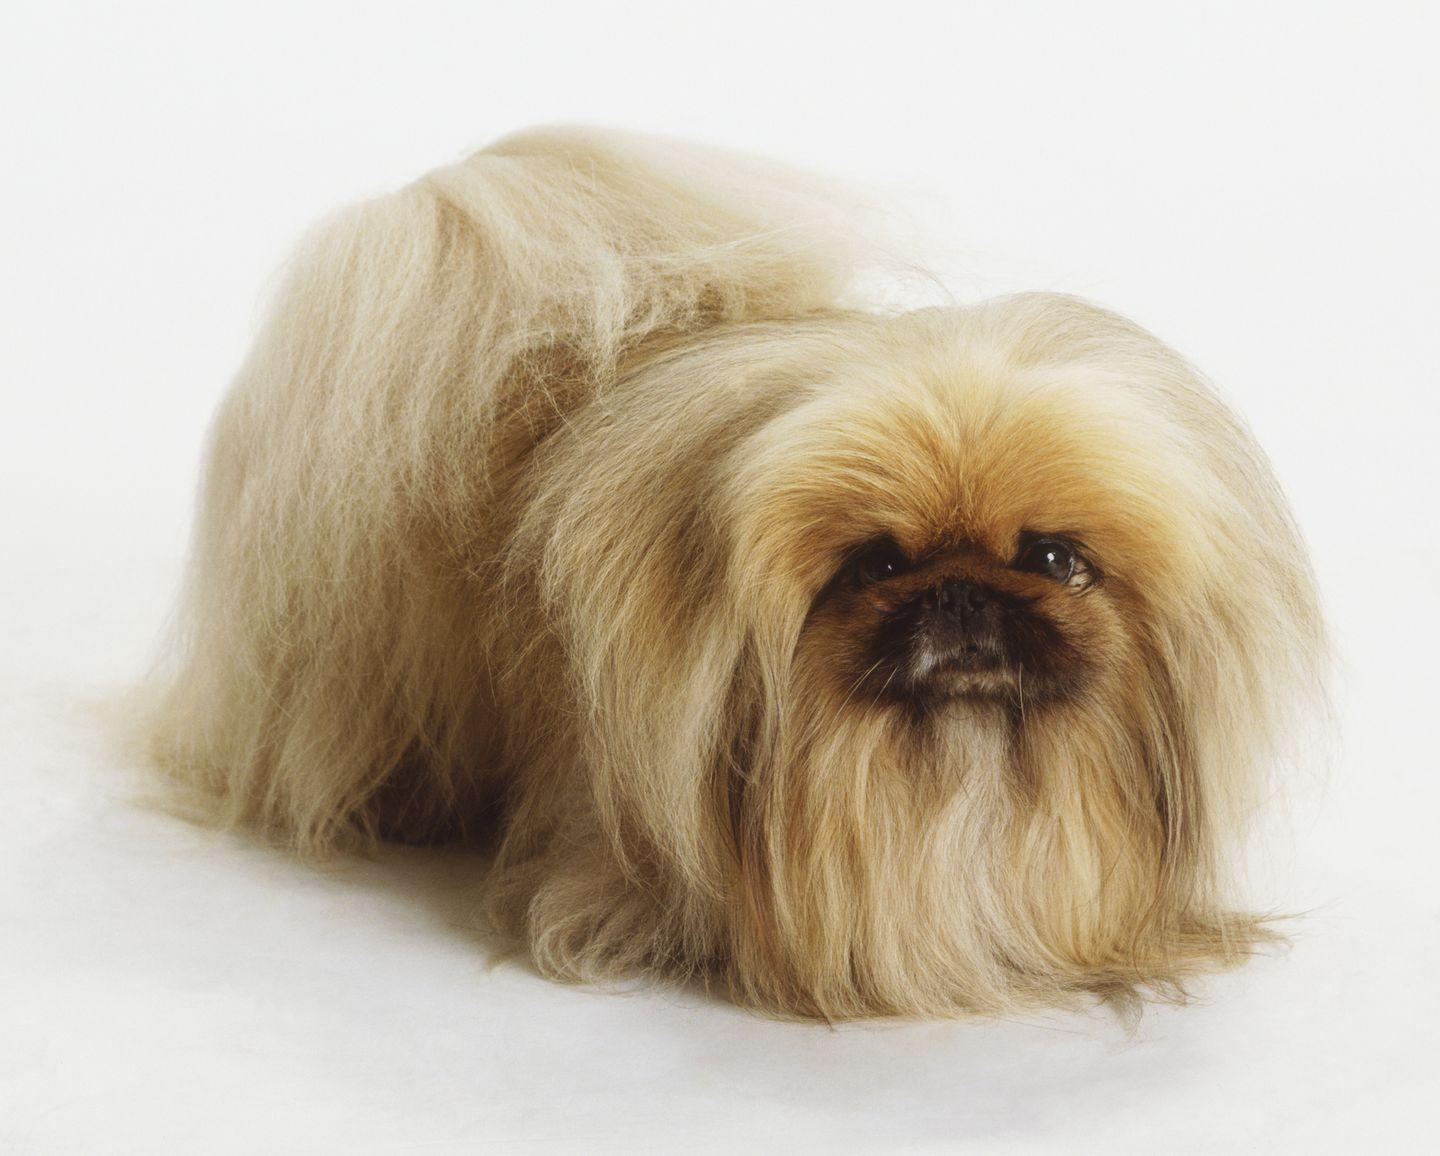 """<p>According to the AKC, these small pups were common pets for the <a href=""""https://www.akc.org/expert-advice/lifestyle/10-facts-about-pekingese-dogs/"""" rel=""""nofollow noopener"""" target=""""_blank"""" data-ylk=""""slk:Chinese imperial family members"""" class=""""link rapid-noclick-resp"""">Chinese imperial family members</a>. In the 1860s, British invaders brought the dogs back to England and introduced them to the western world at large. </p><p>Chinese legend says that these dogs are shrunken down lions because they're so fierce for their size. </p>"""